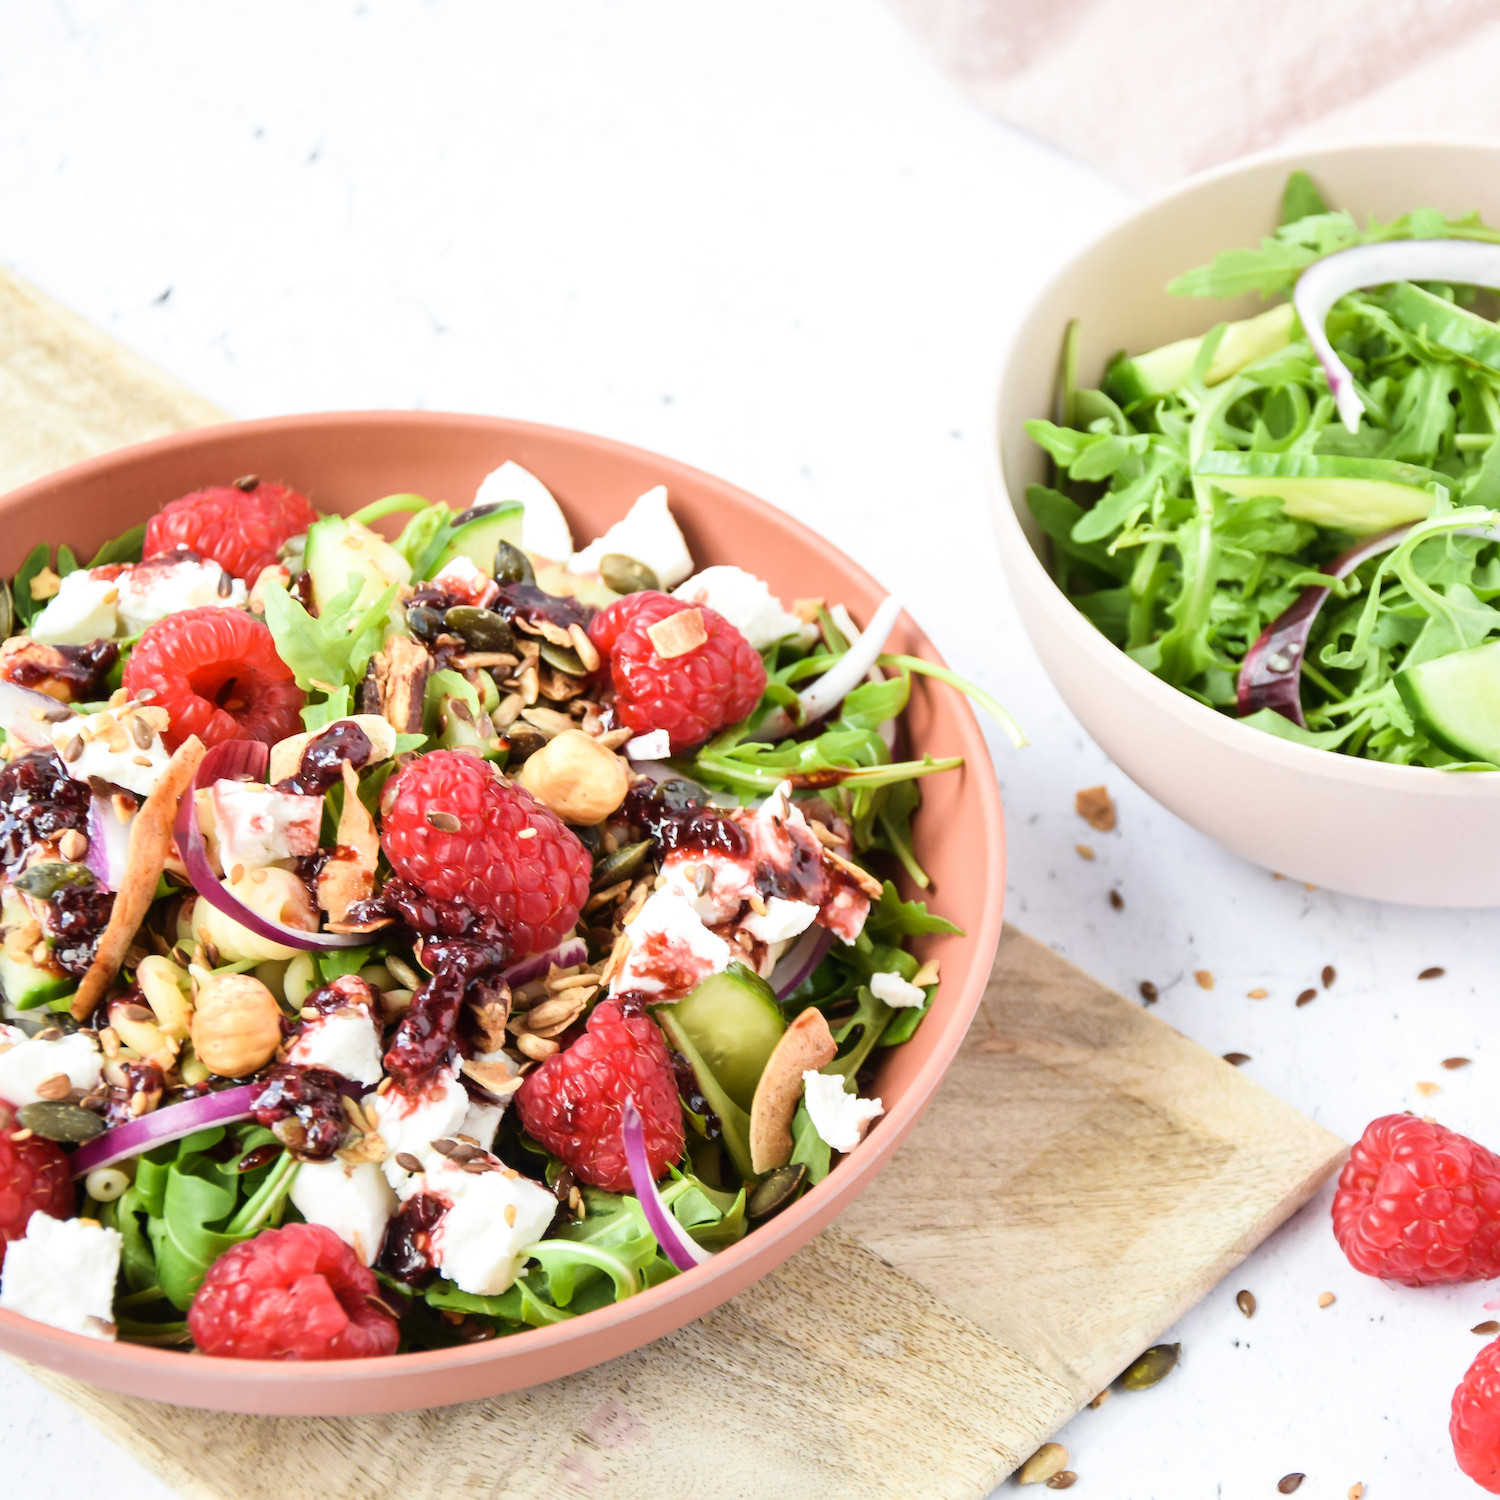 Summery pasta salad with XAVIES' pure toasted nuts & seeds